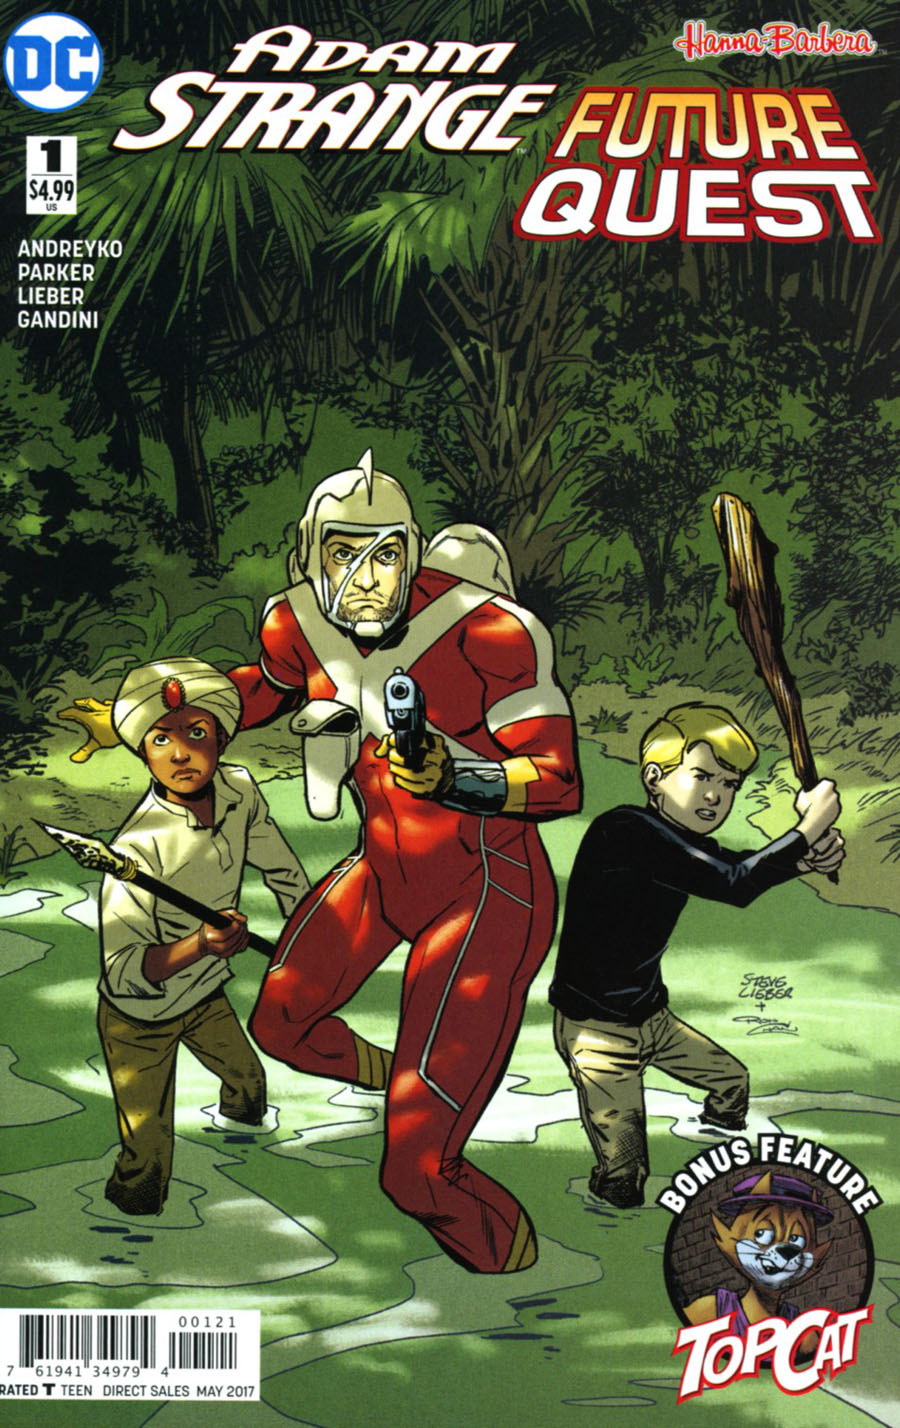 Adam Strange Future Quest Special #1 Cover B Variant Steve Lieber Cover